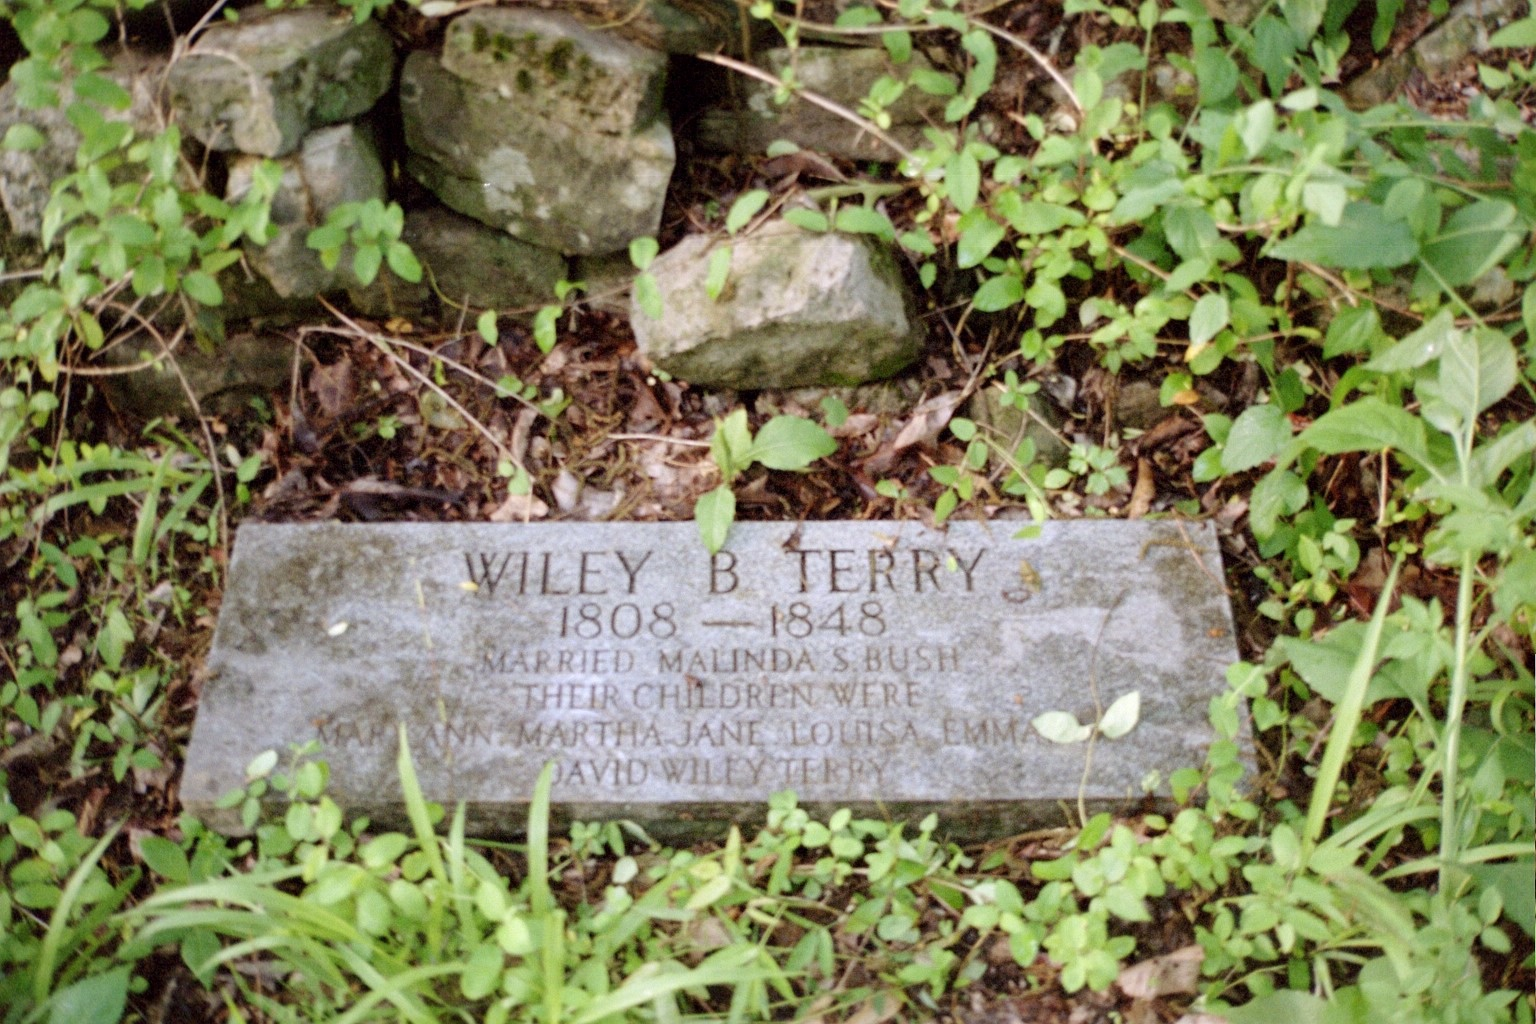 Wiley B Terry